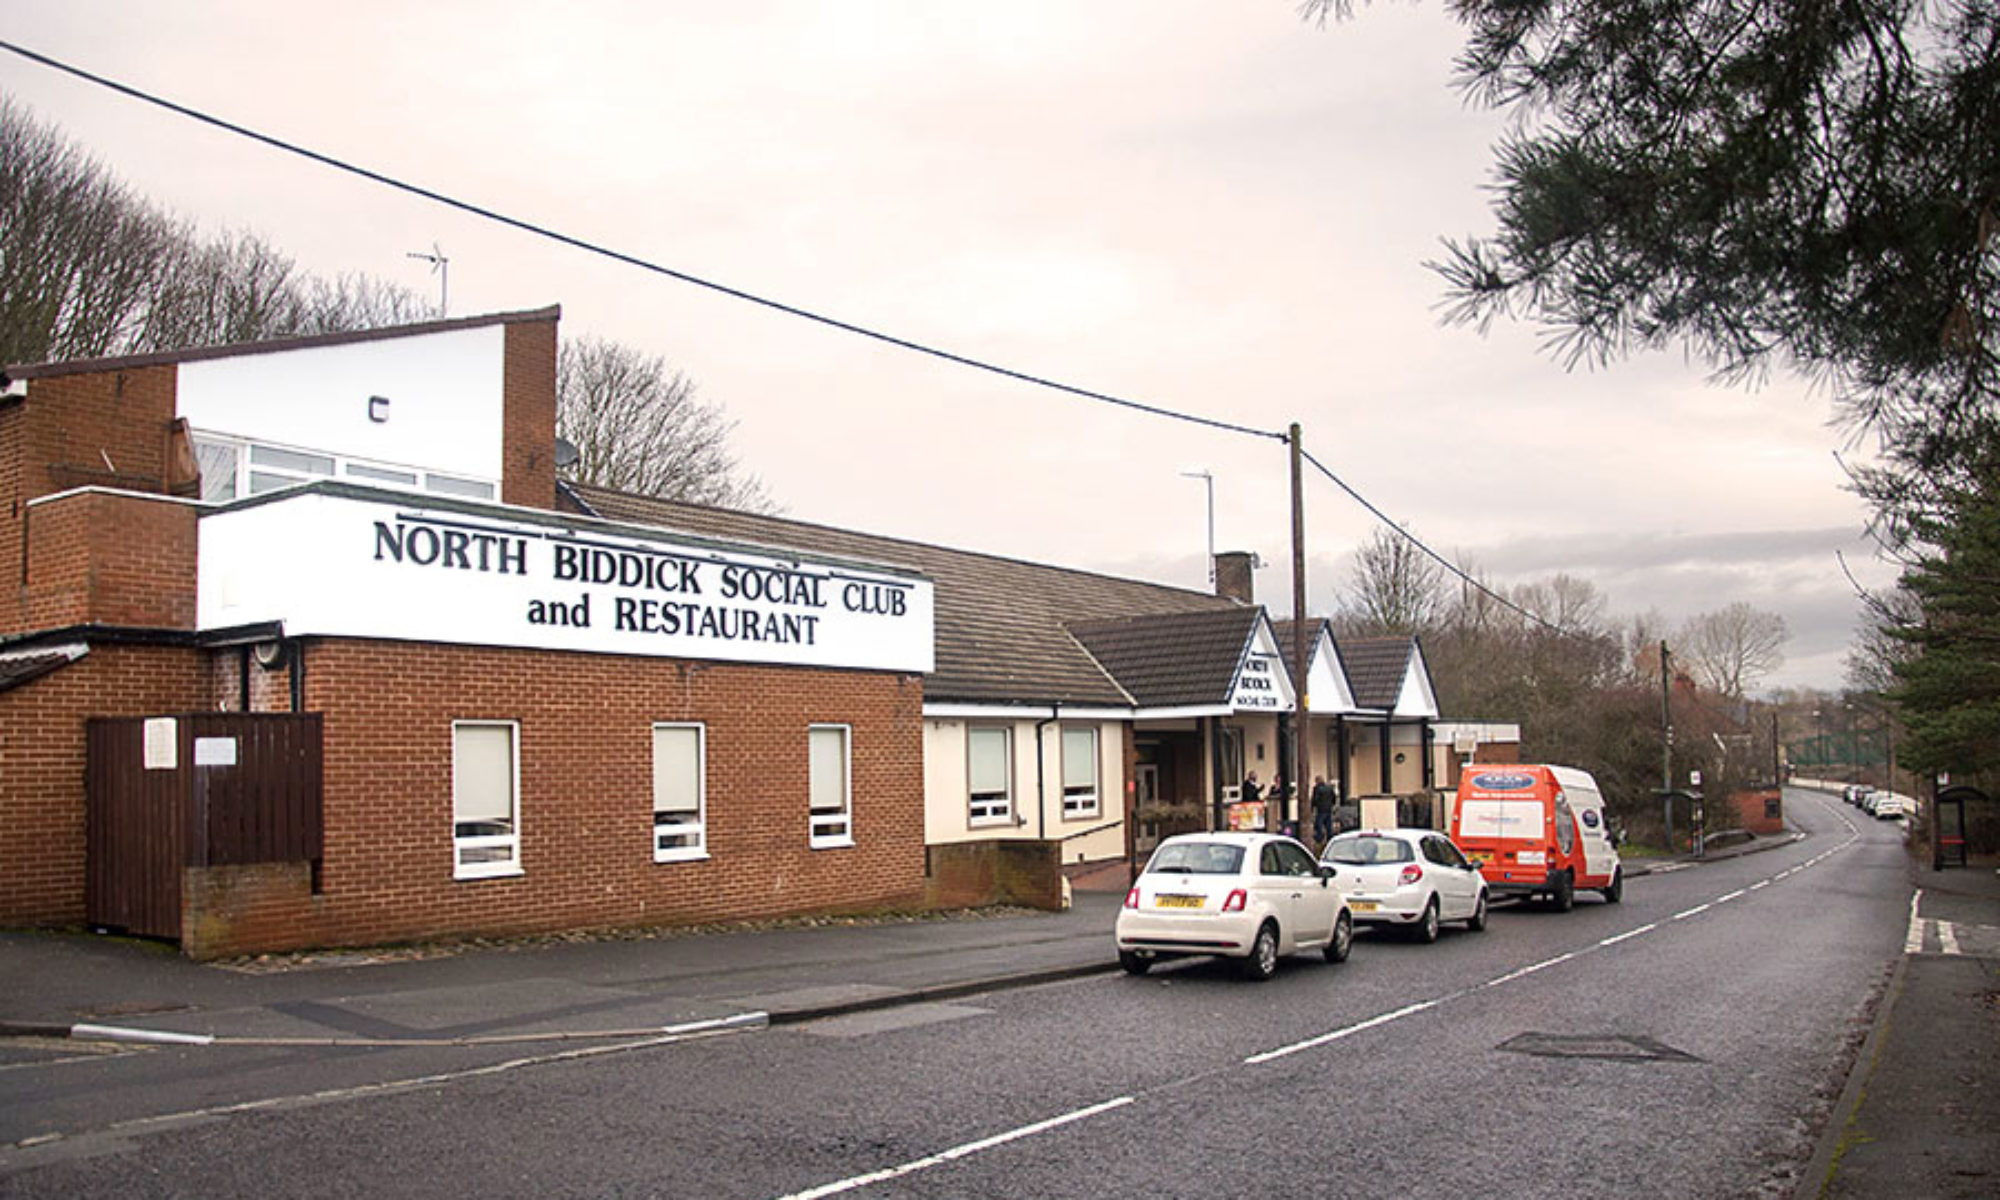 North Biddick Social Club